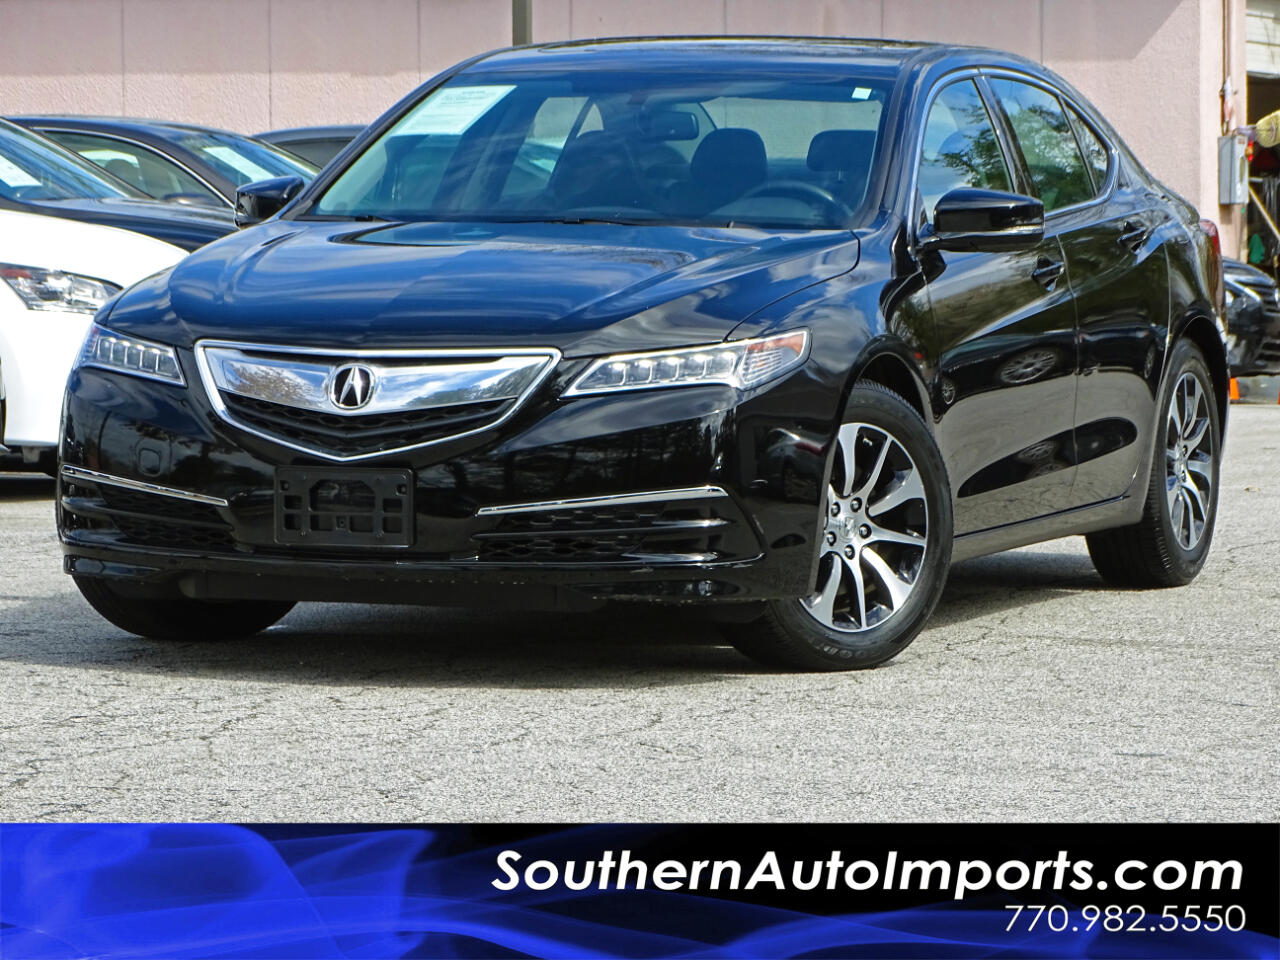 2016 Acura TLX AUTO w/Back up Camera Paddle Shifter